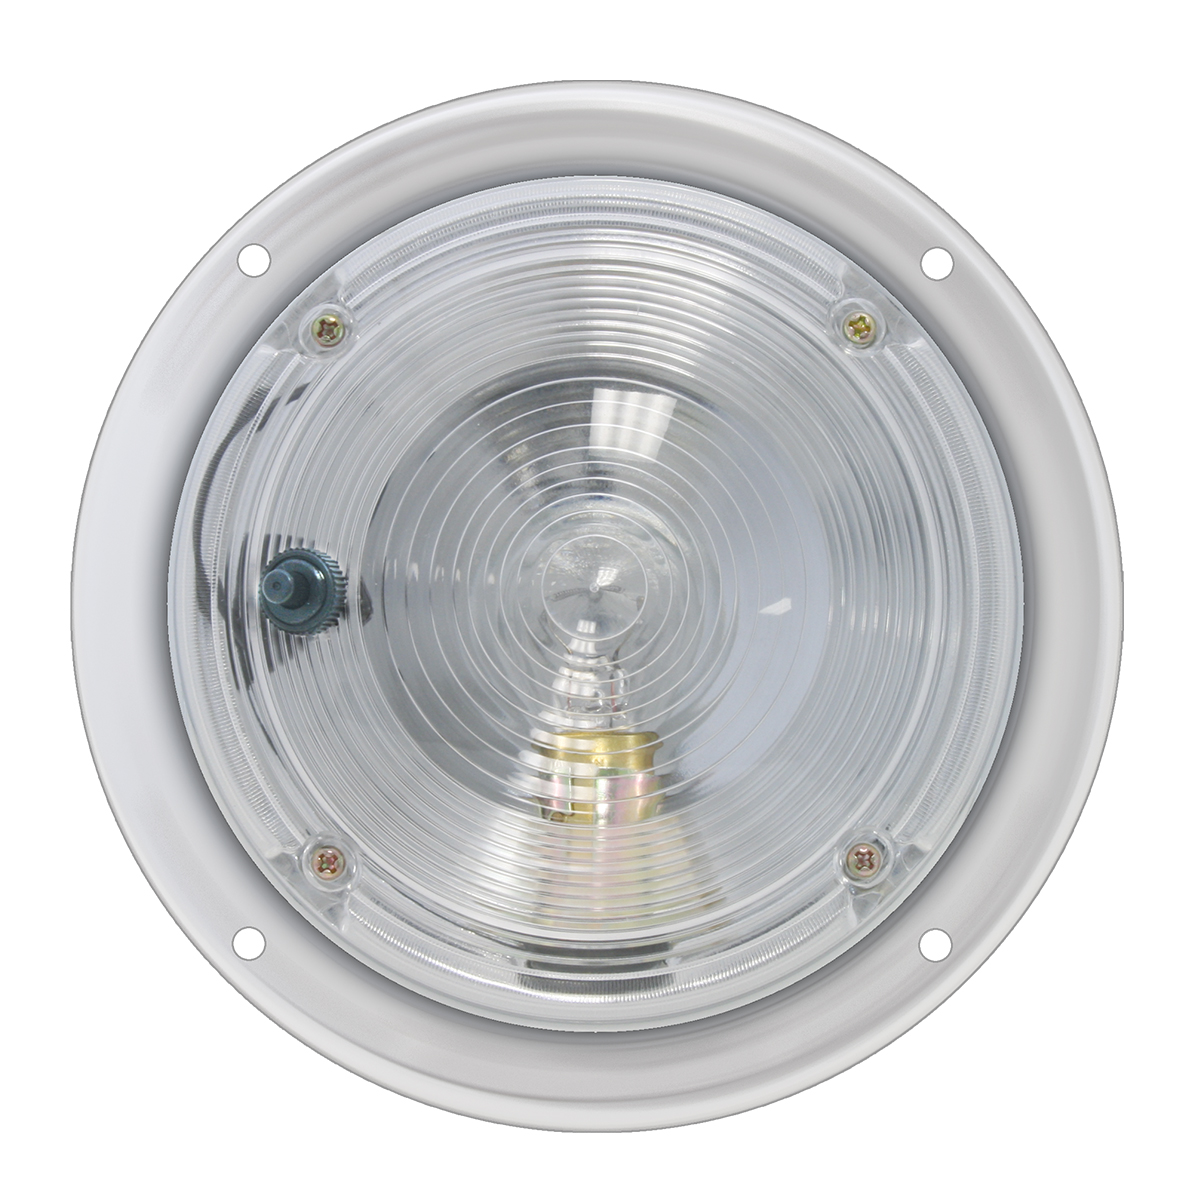 "#77843 5"" Chrome Steel Dome Light"